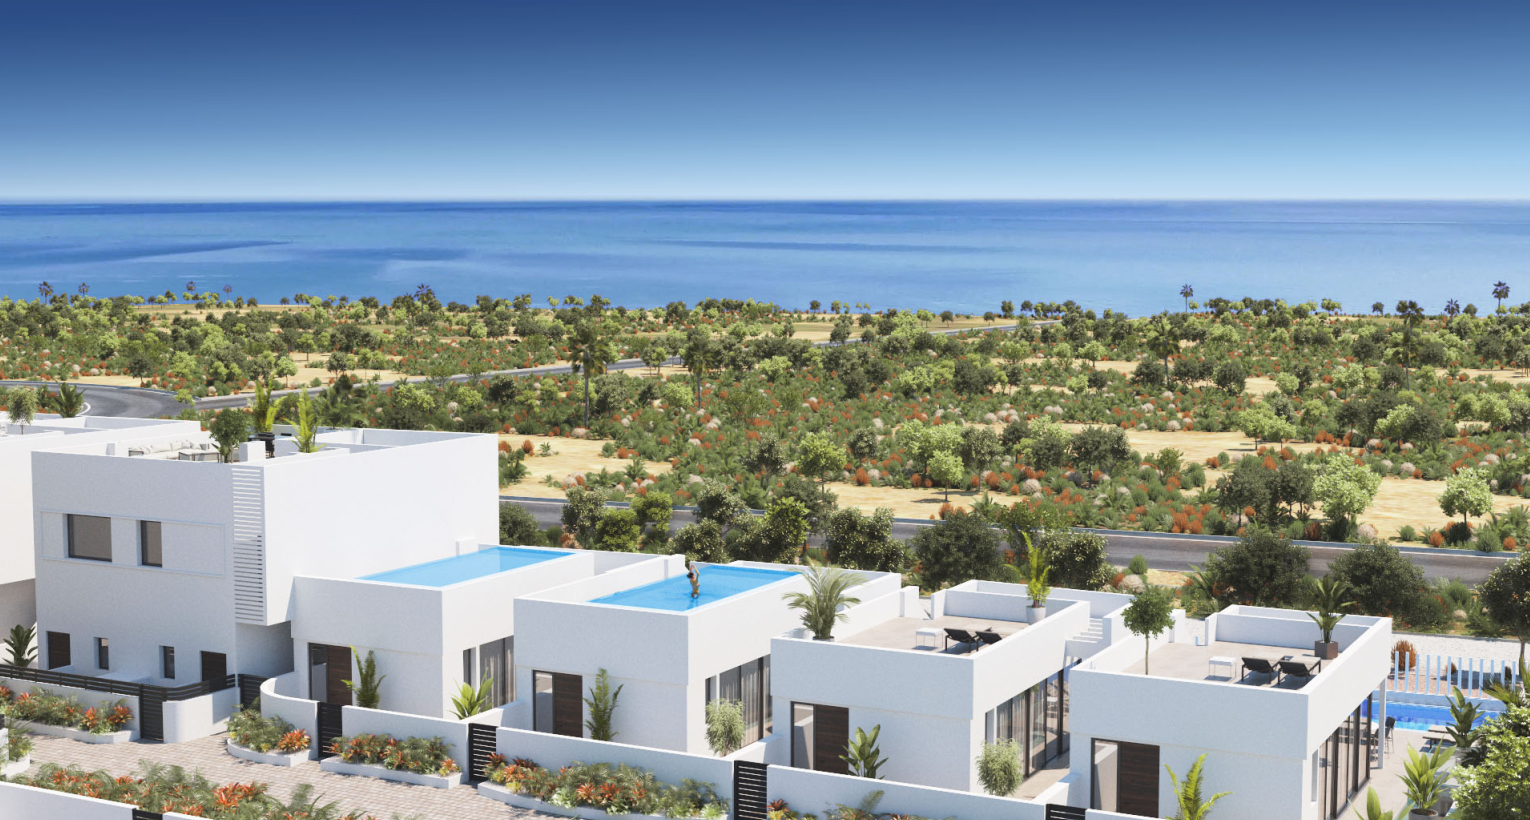 For sale: 2 bedroom apartment / flat in Guardamar del Segura, Costa Blanca